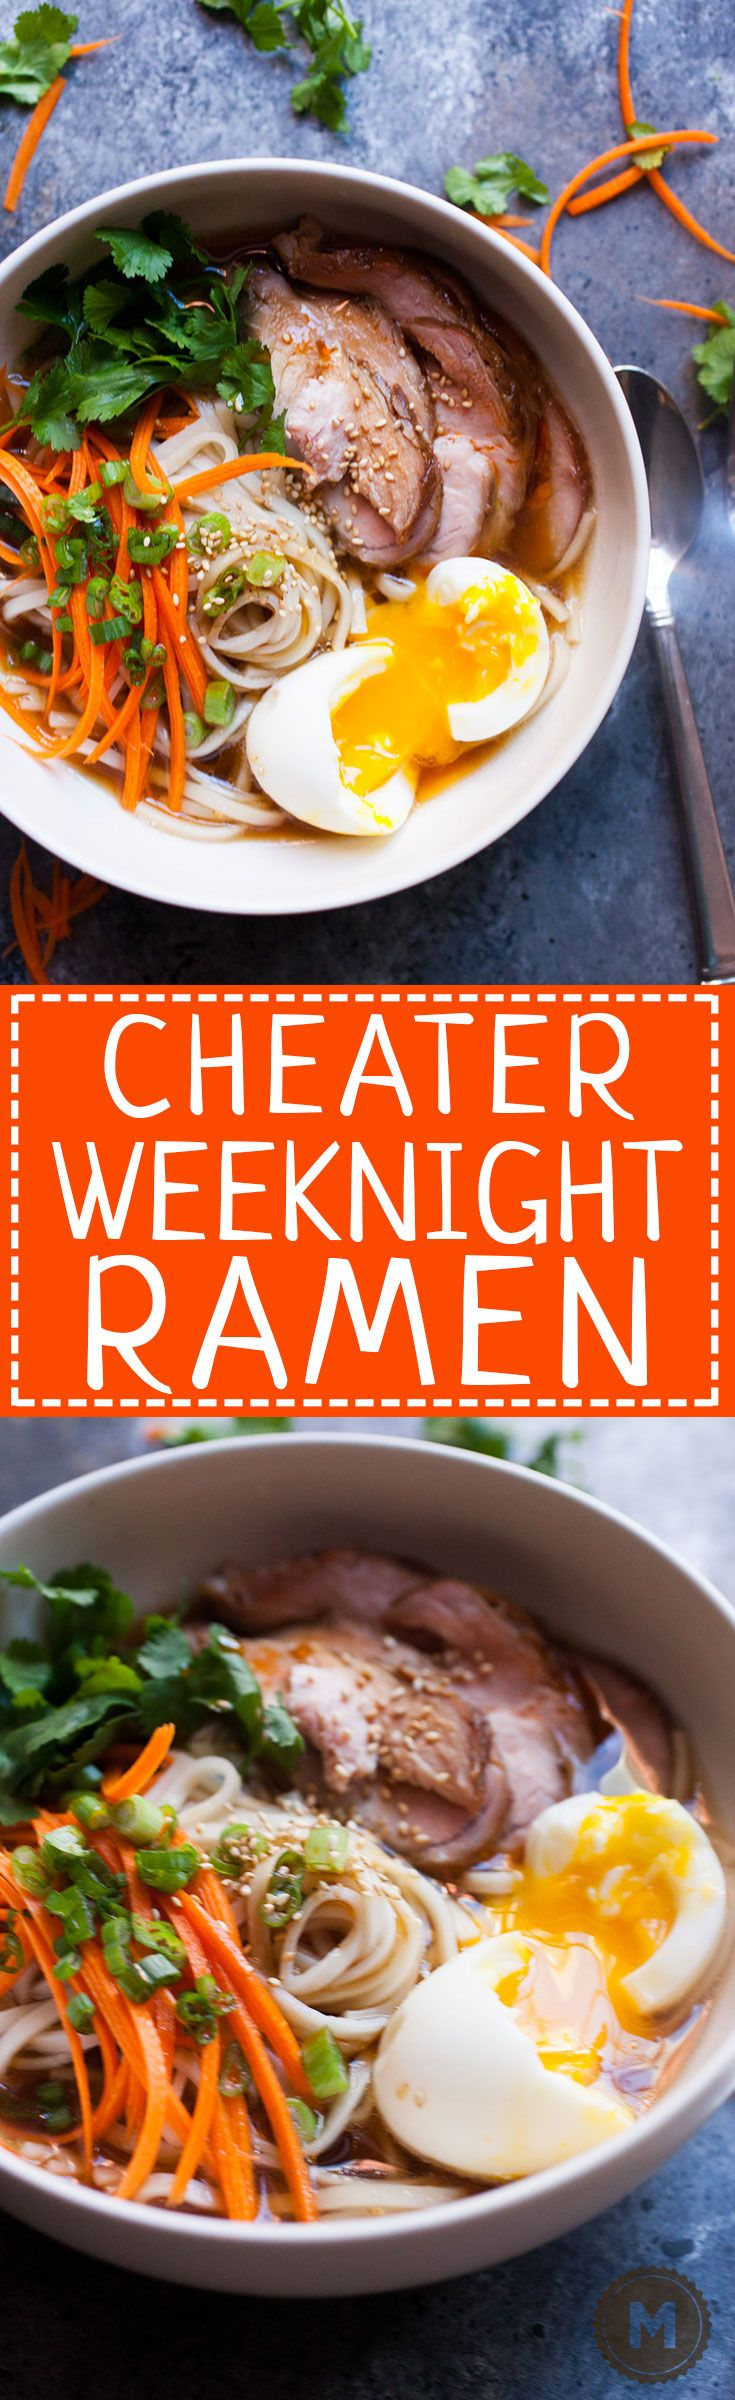 Cheater Weeknight Ramen: Some people spend years learning how to make the perfect bowl of ramen. I won't pretend that this is that. But, it's really good and actually doable for a home cook on a weeknight! A few shortcuts plus a few tricks makes for one great bowl of food! | macheesmo.com